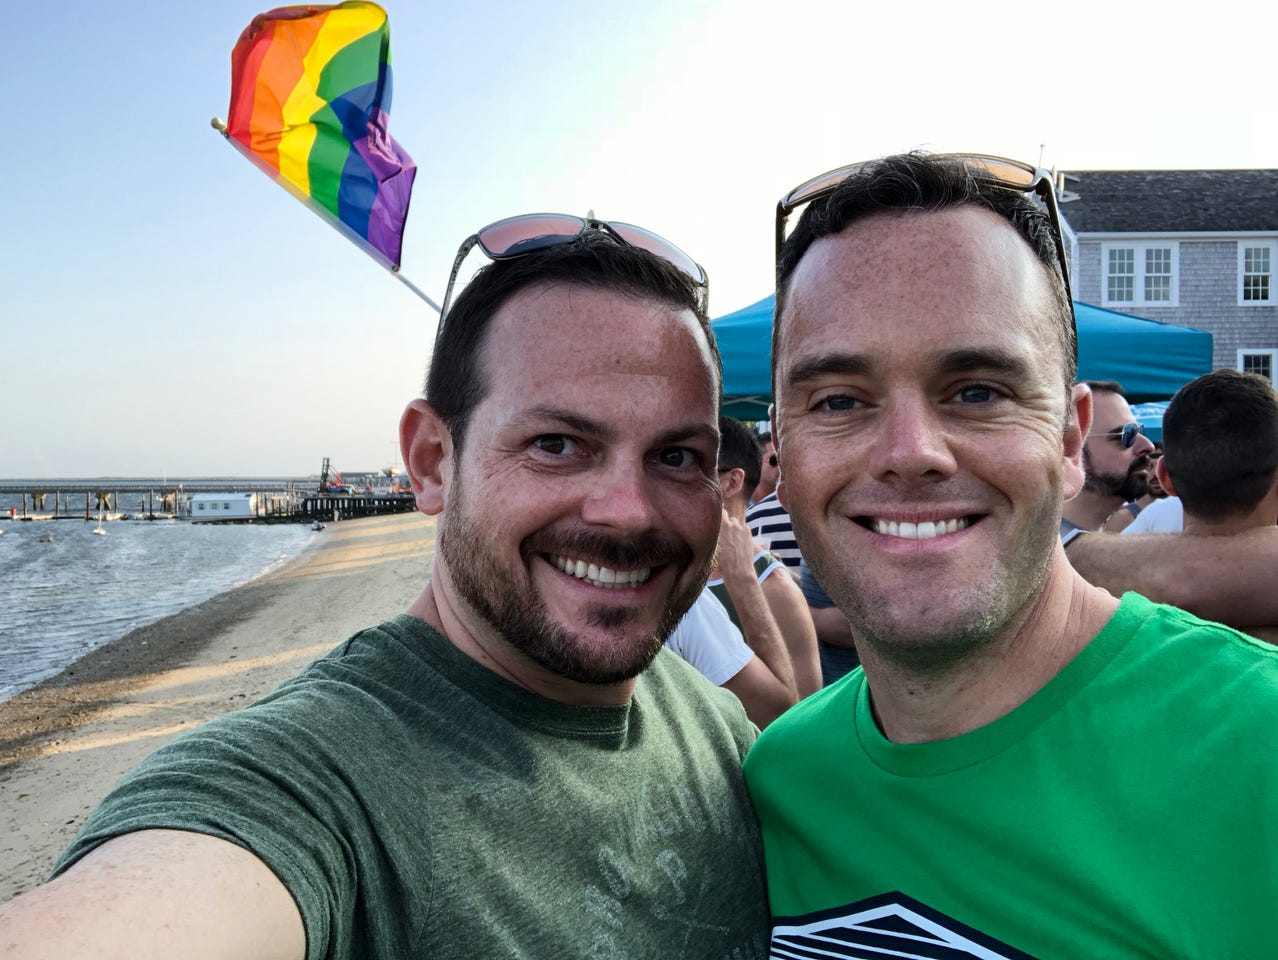 A gay couple faced harassment for 5 years. Handwriting analysis led to a suspect: A neighbor.